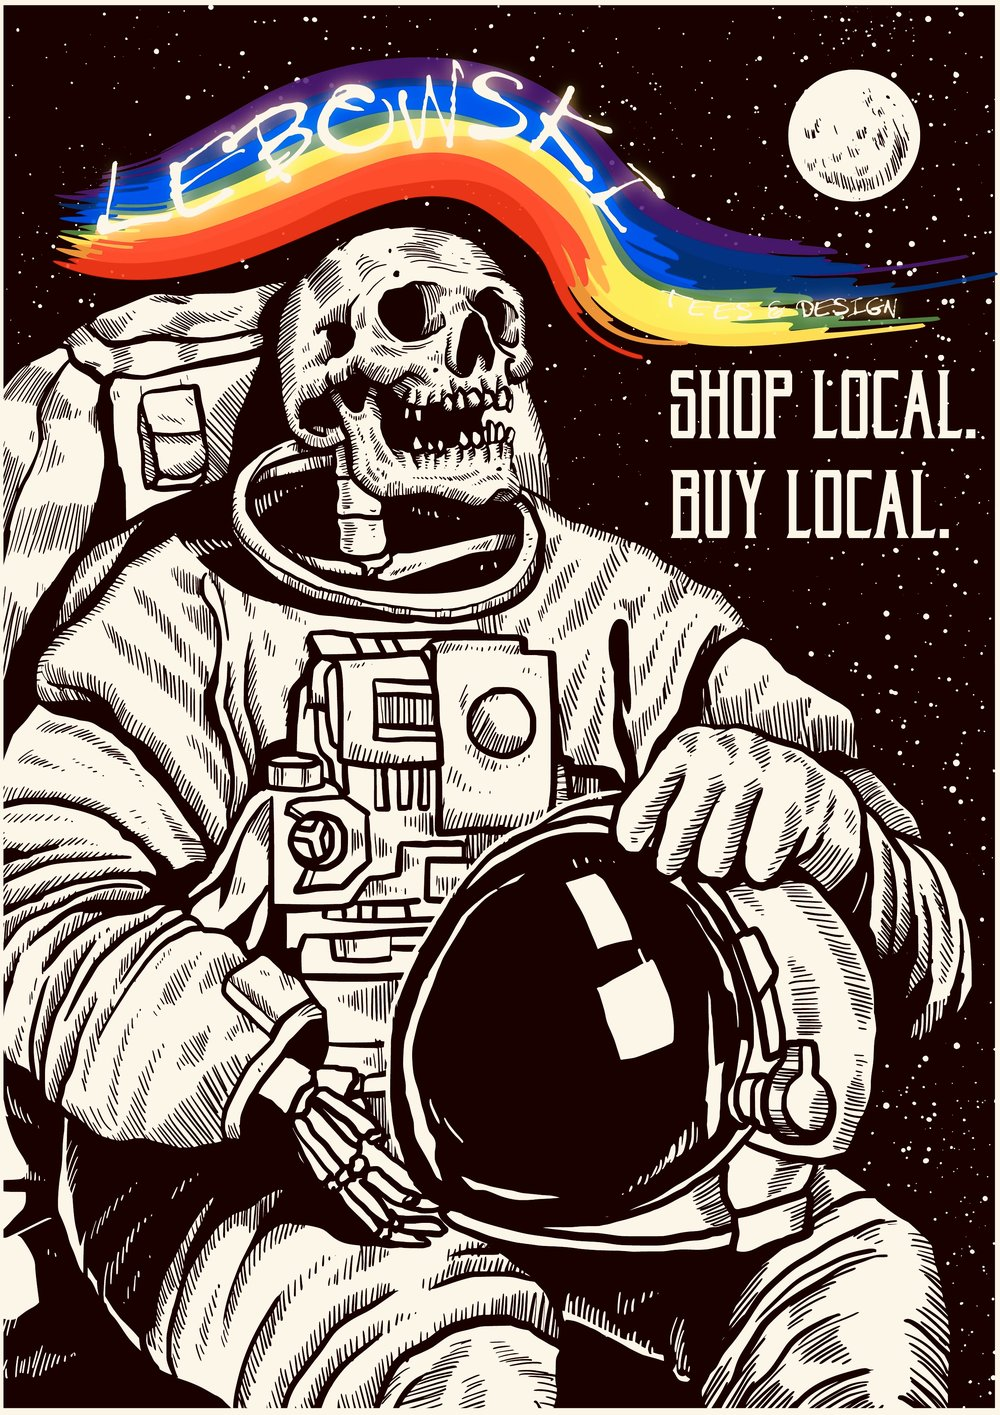 Twitter_shop local_buy local.jpg